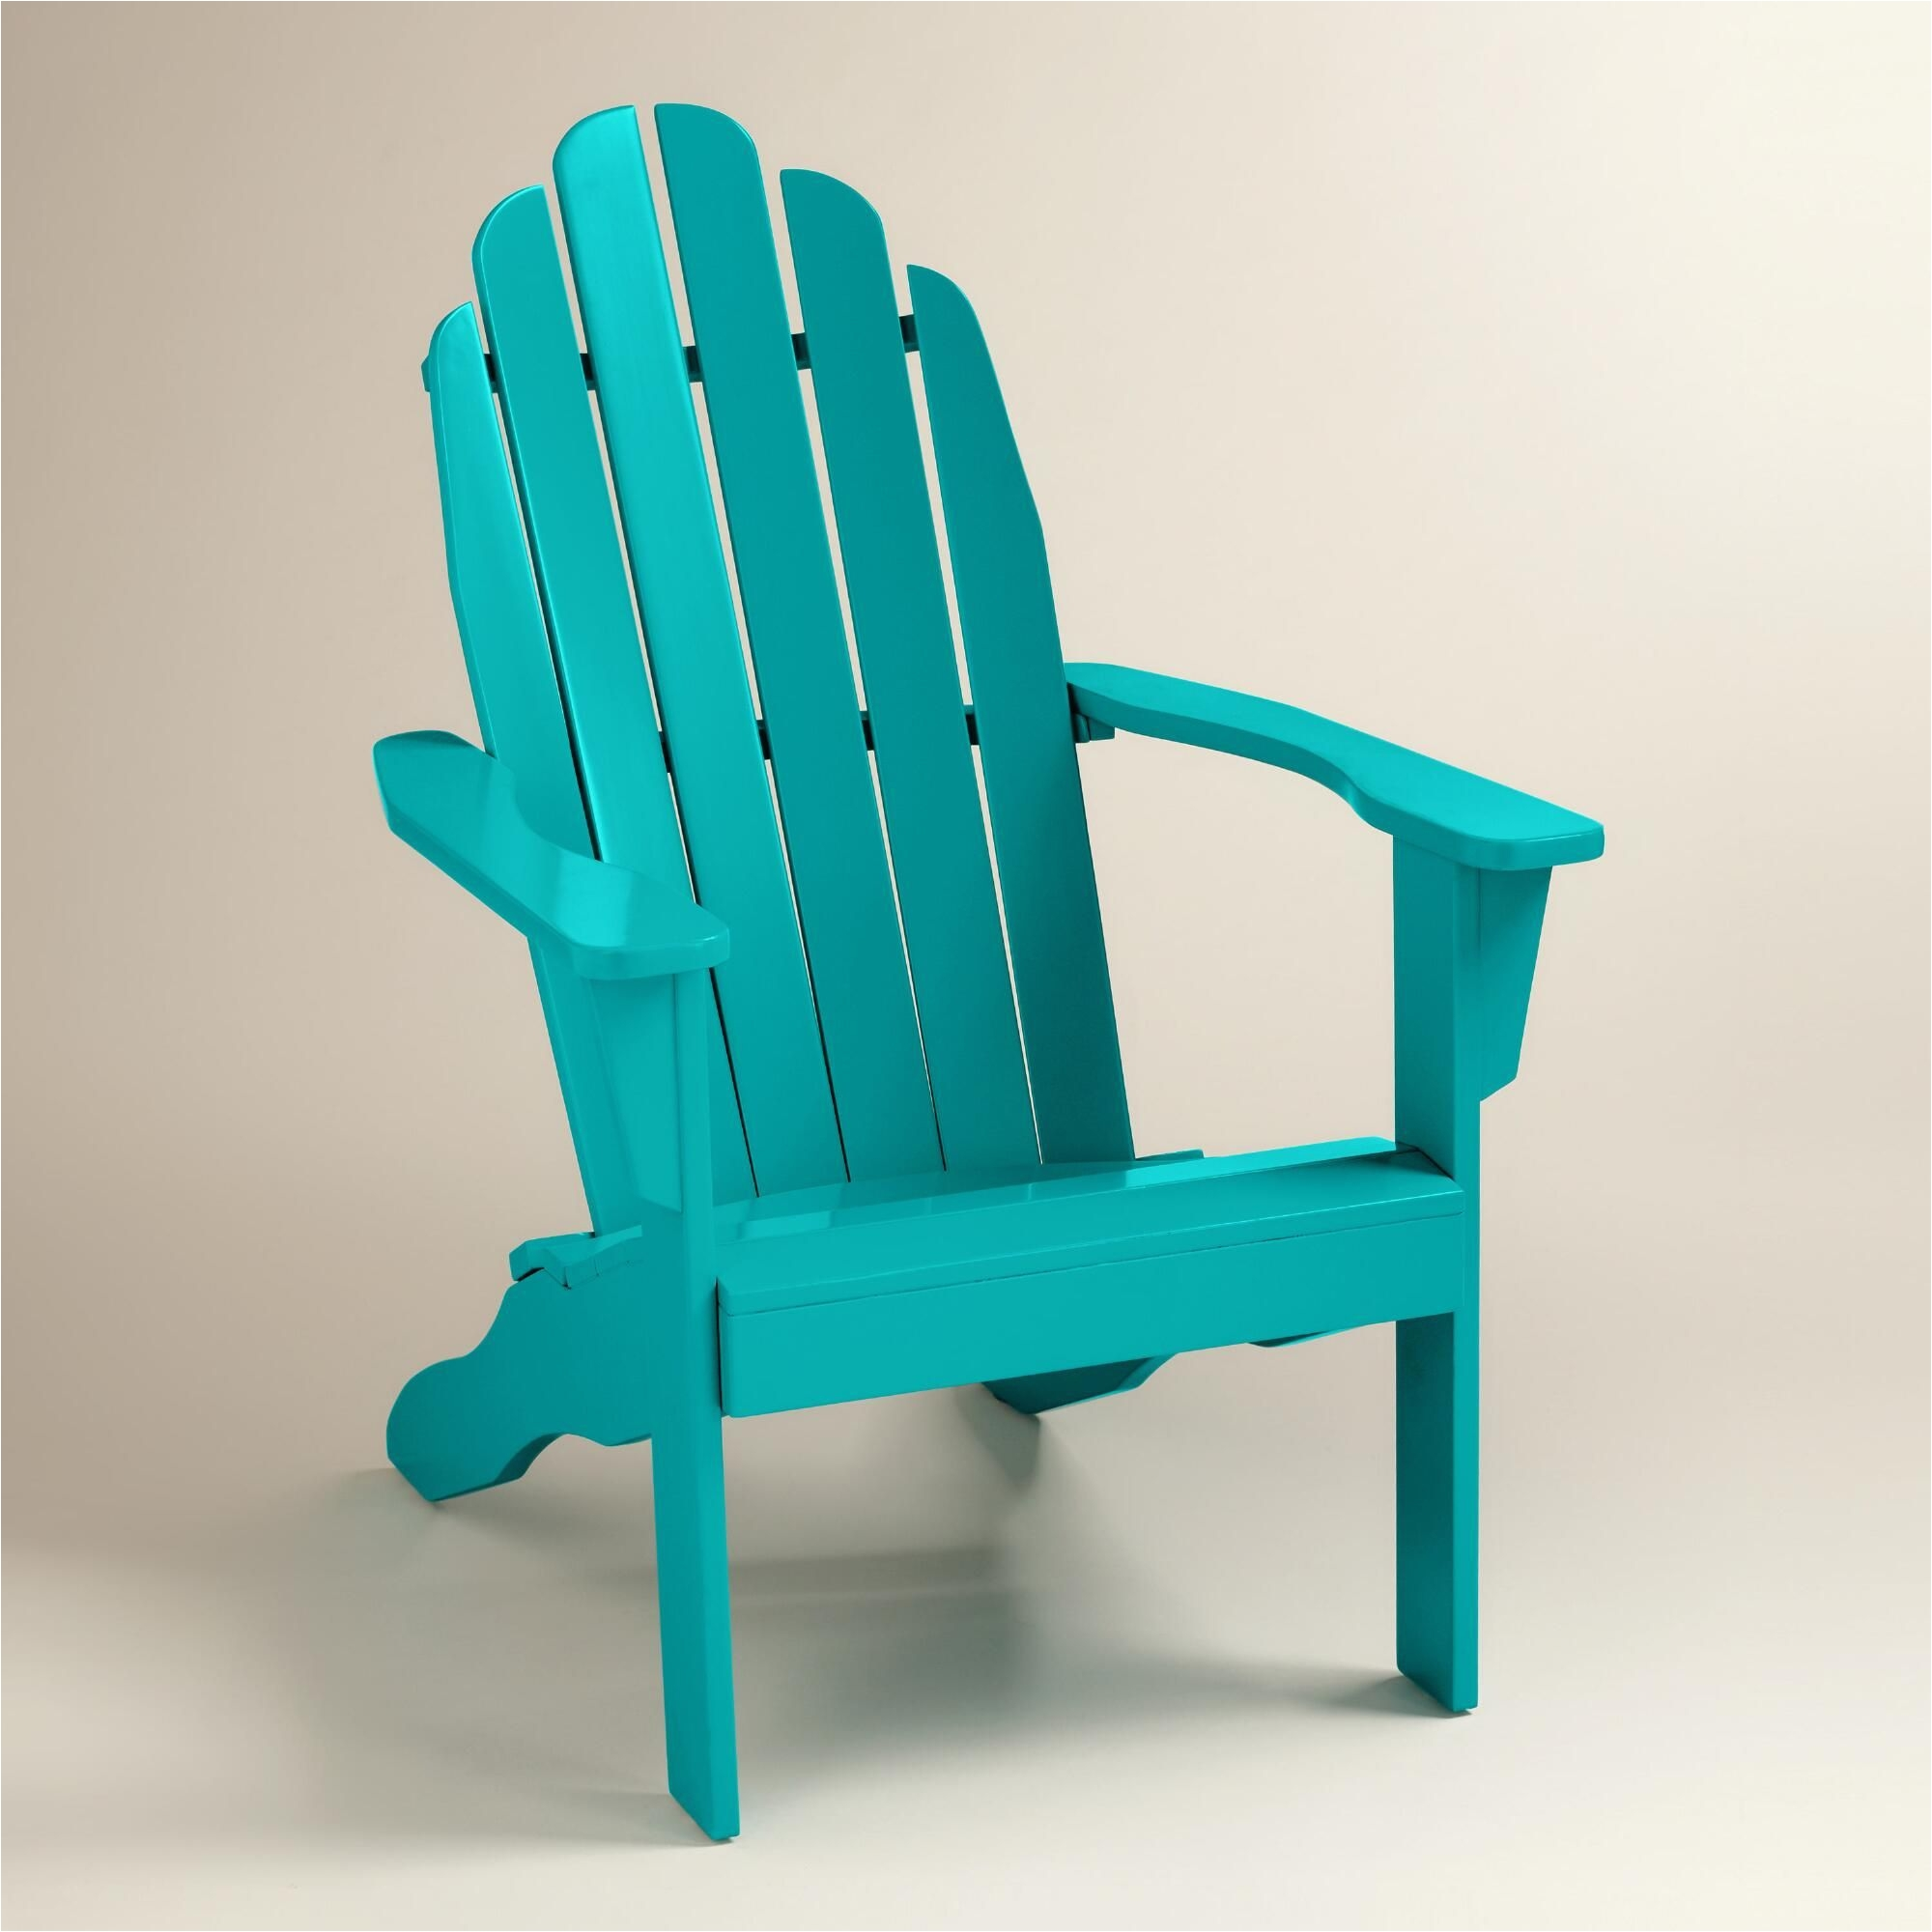 built for comfort our exclusive light blue adirondack chair invites resplendent relaxation with its wide